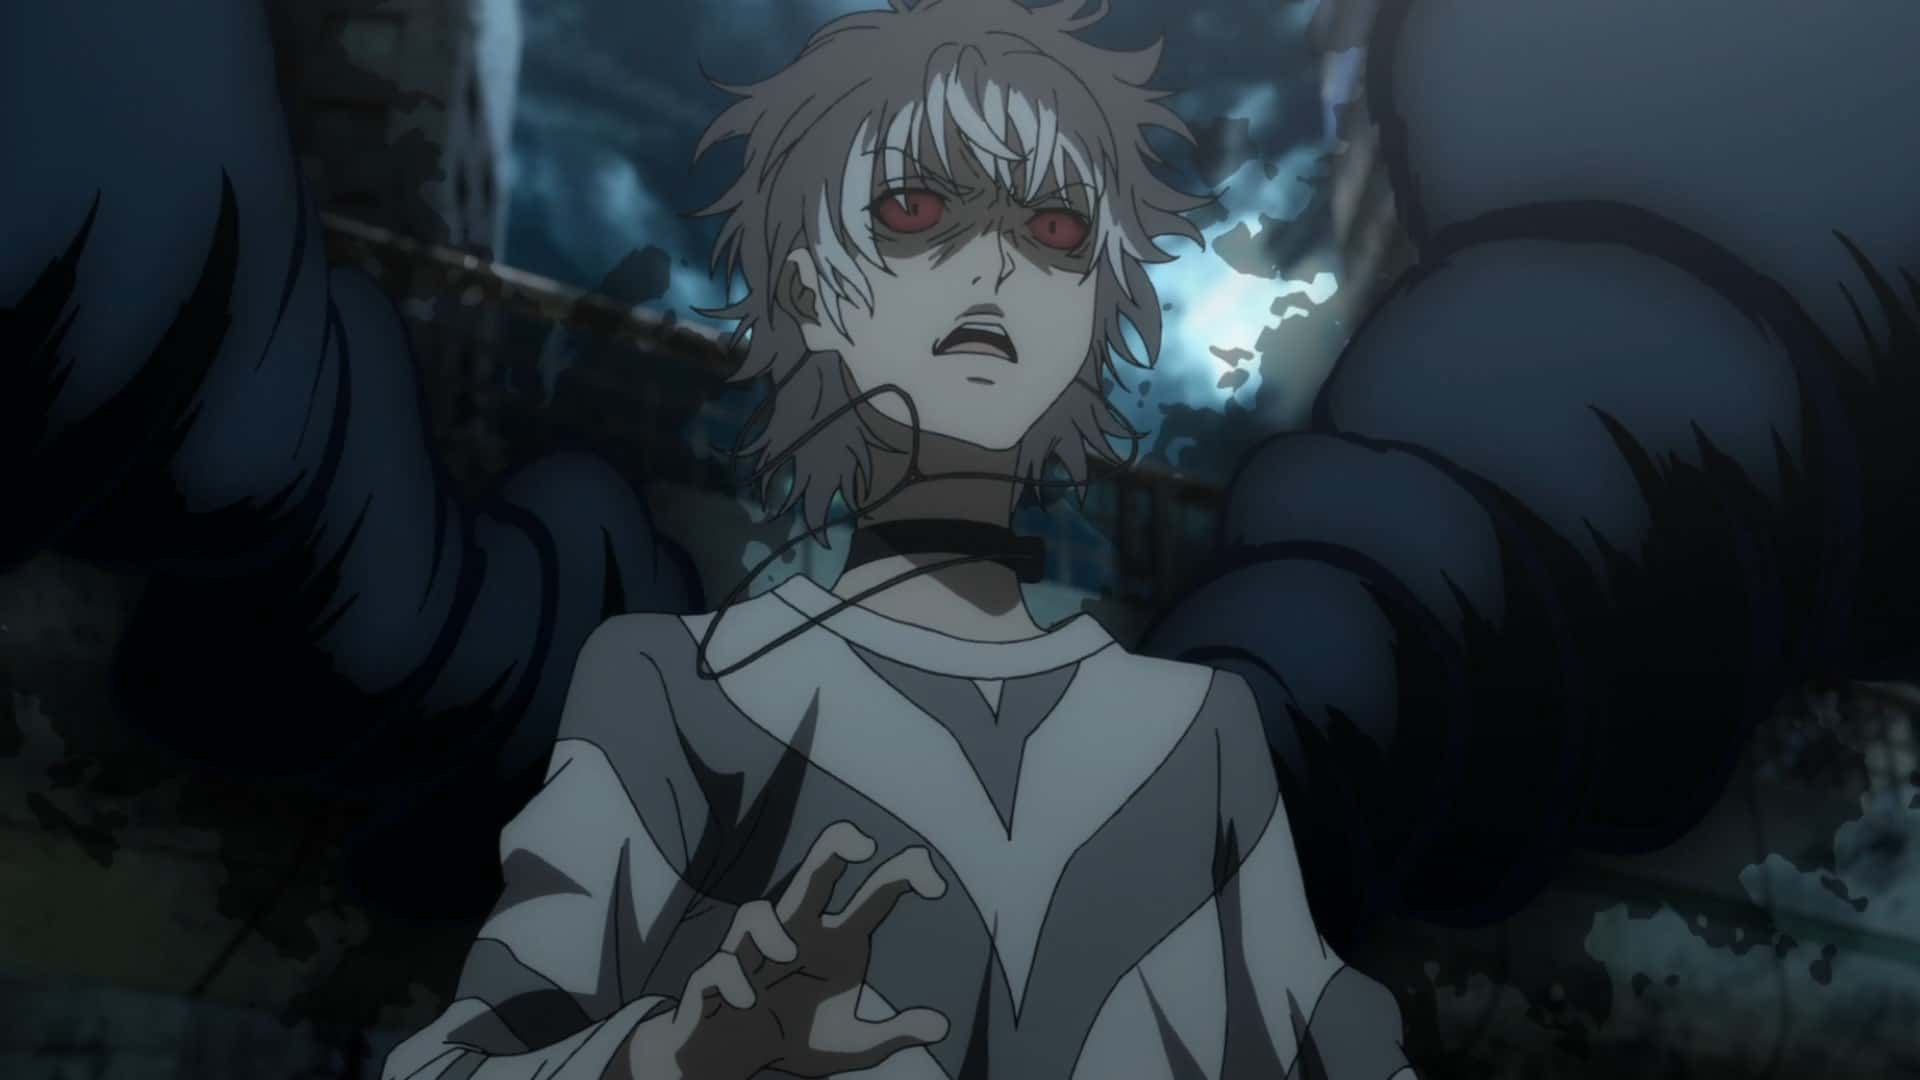 Accelerator (Toaru Majutsu no Index III)